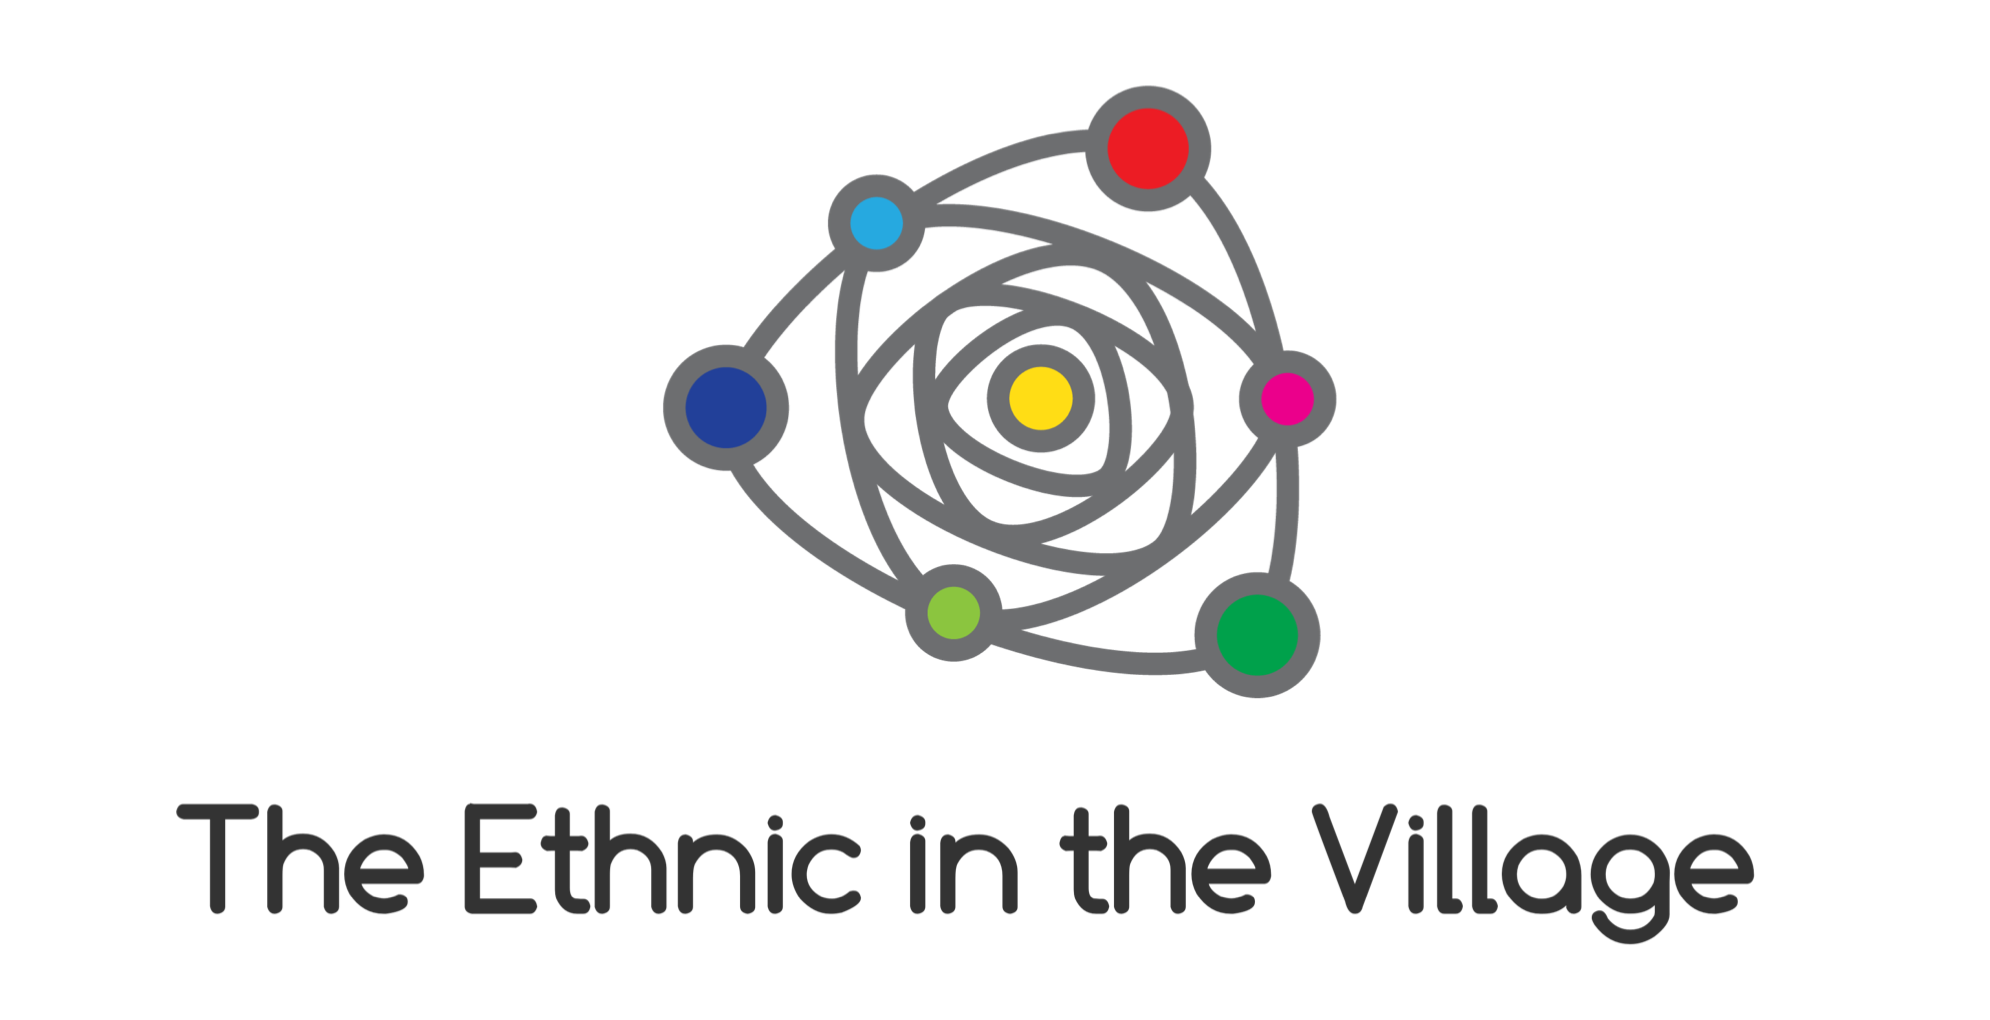 The Ethnic in the Village